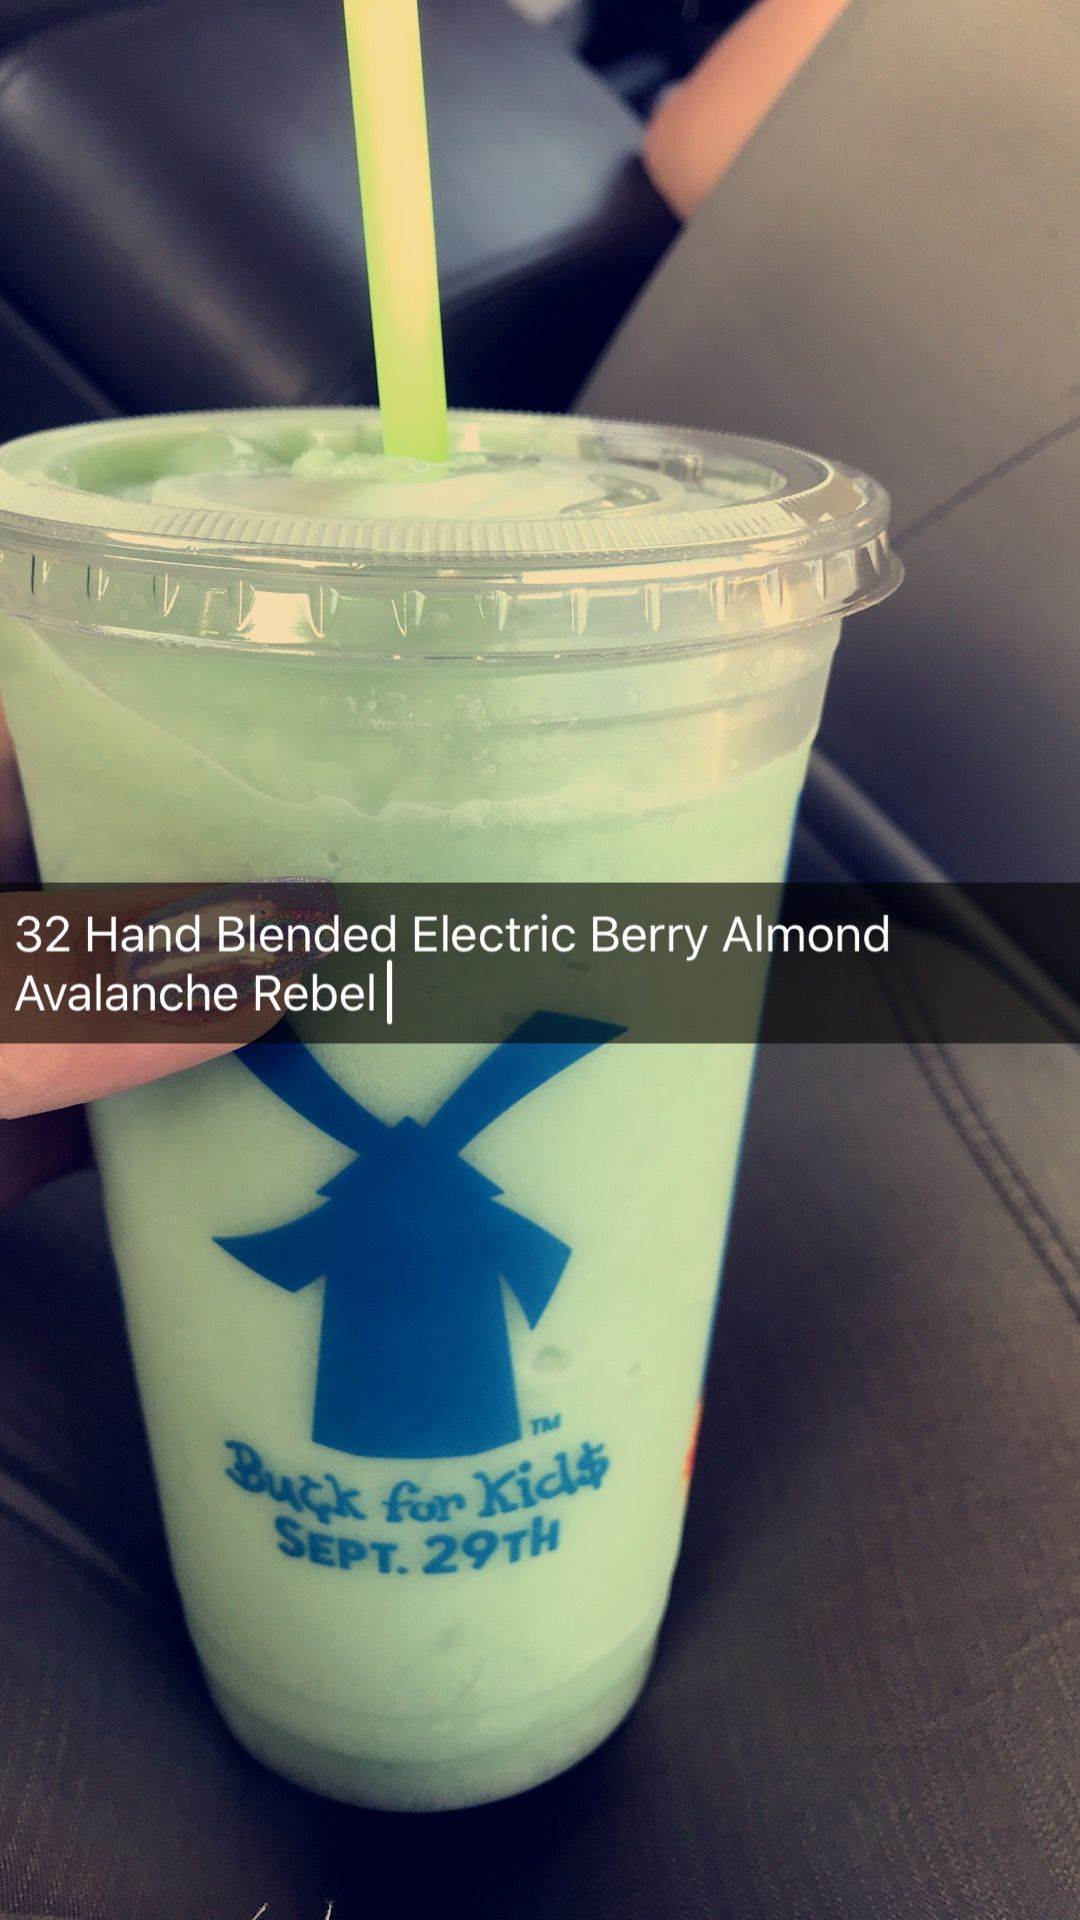 Dutch Bros 32oz Hand Blended Electric Berry Almond Avalanche Rebel energy drink  #dutchbros #rebel #drinks #caffine #db #dutchbros